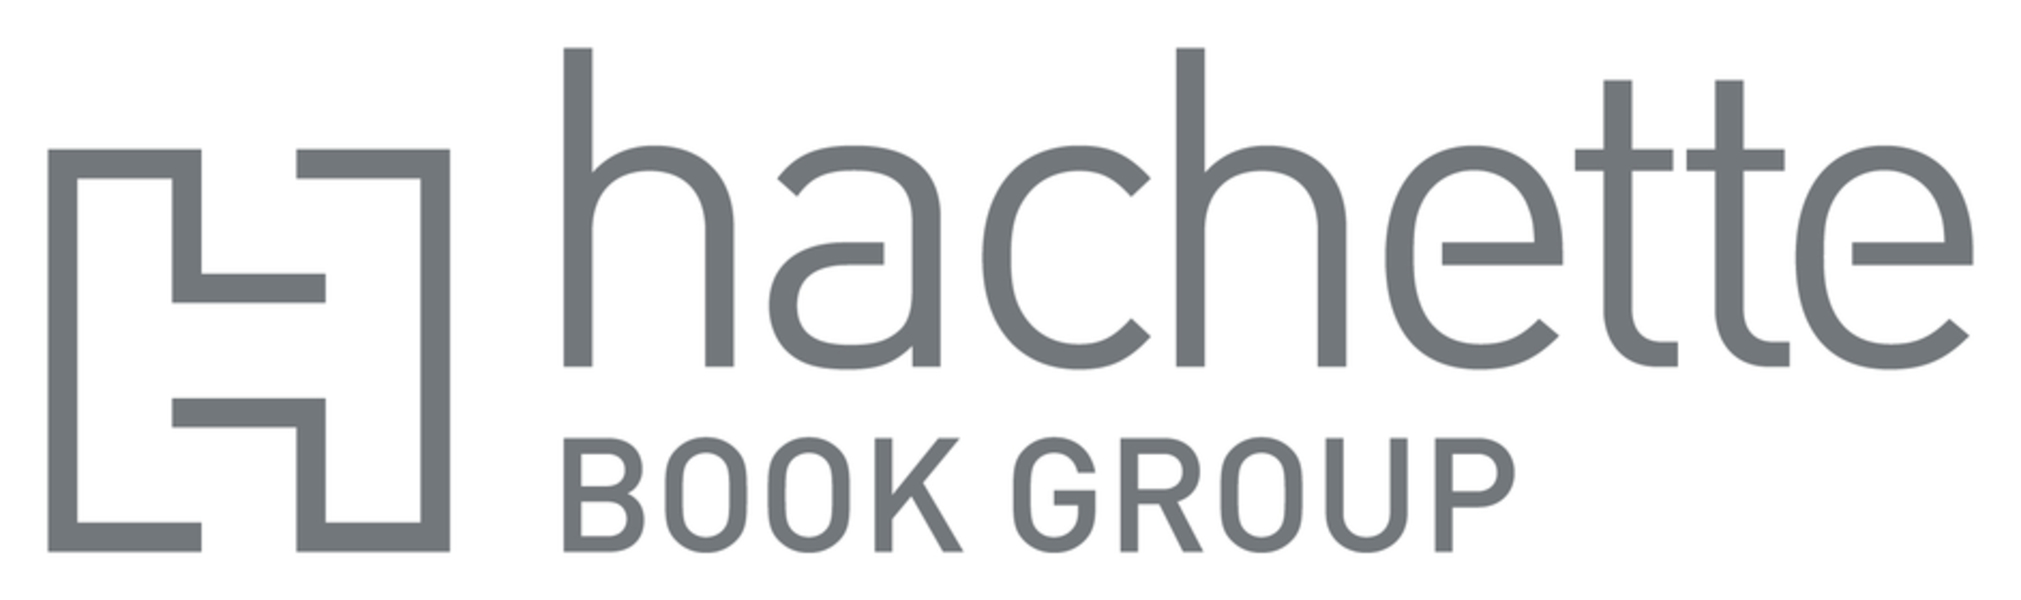 Hachette-Book-Group_1